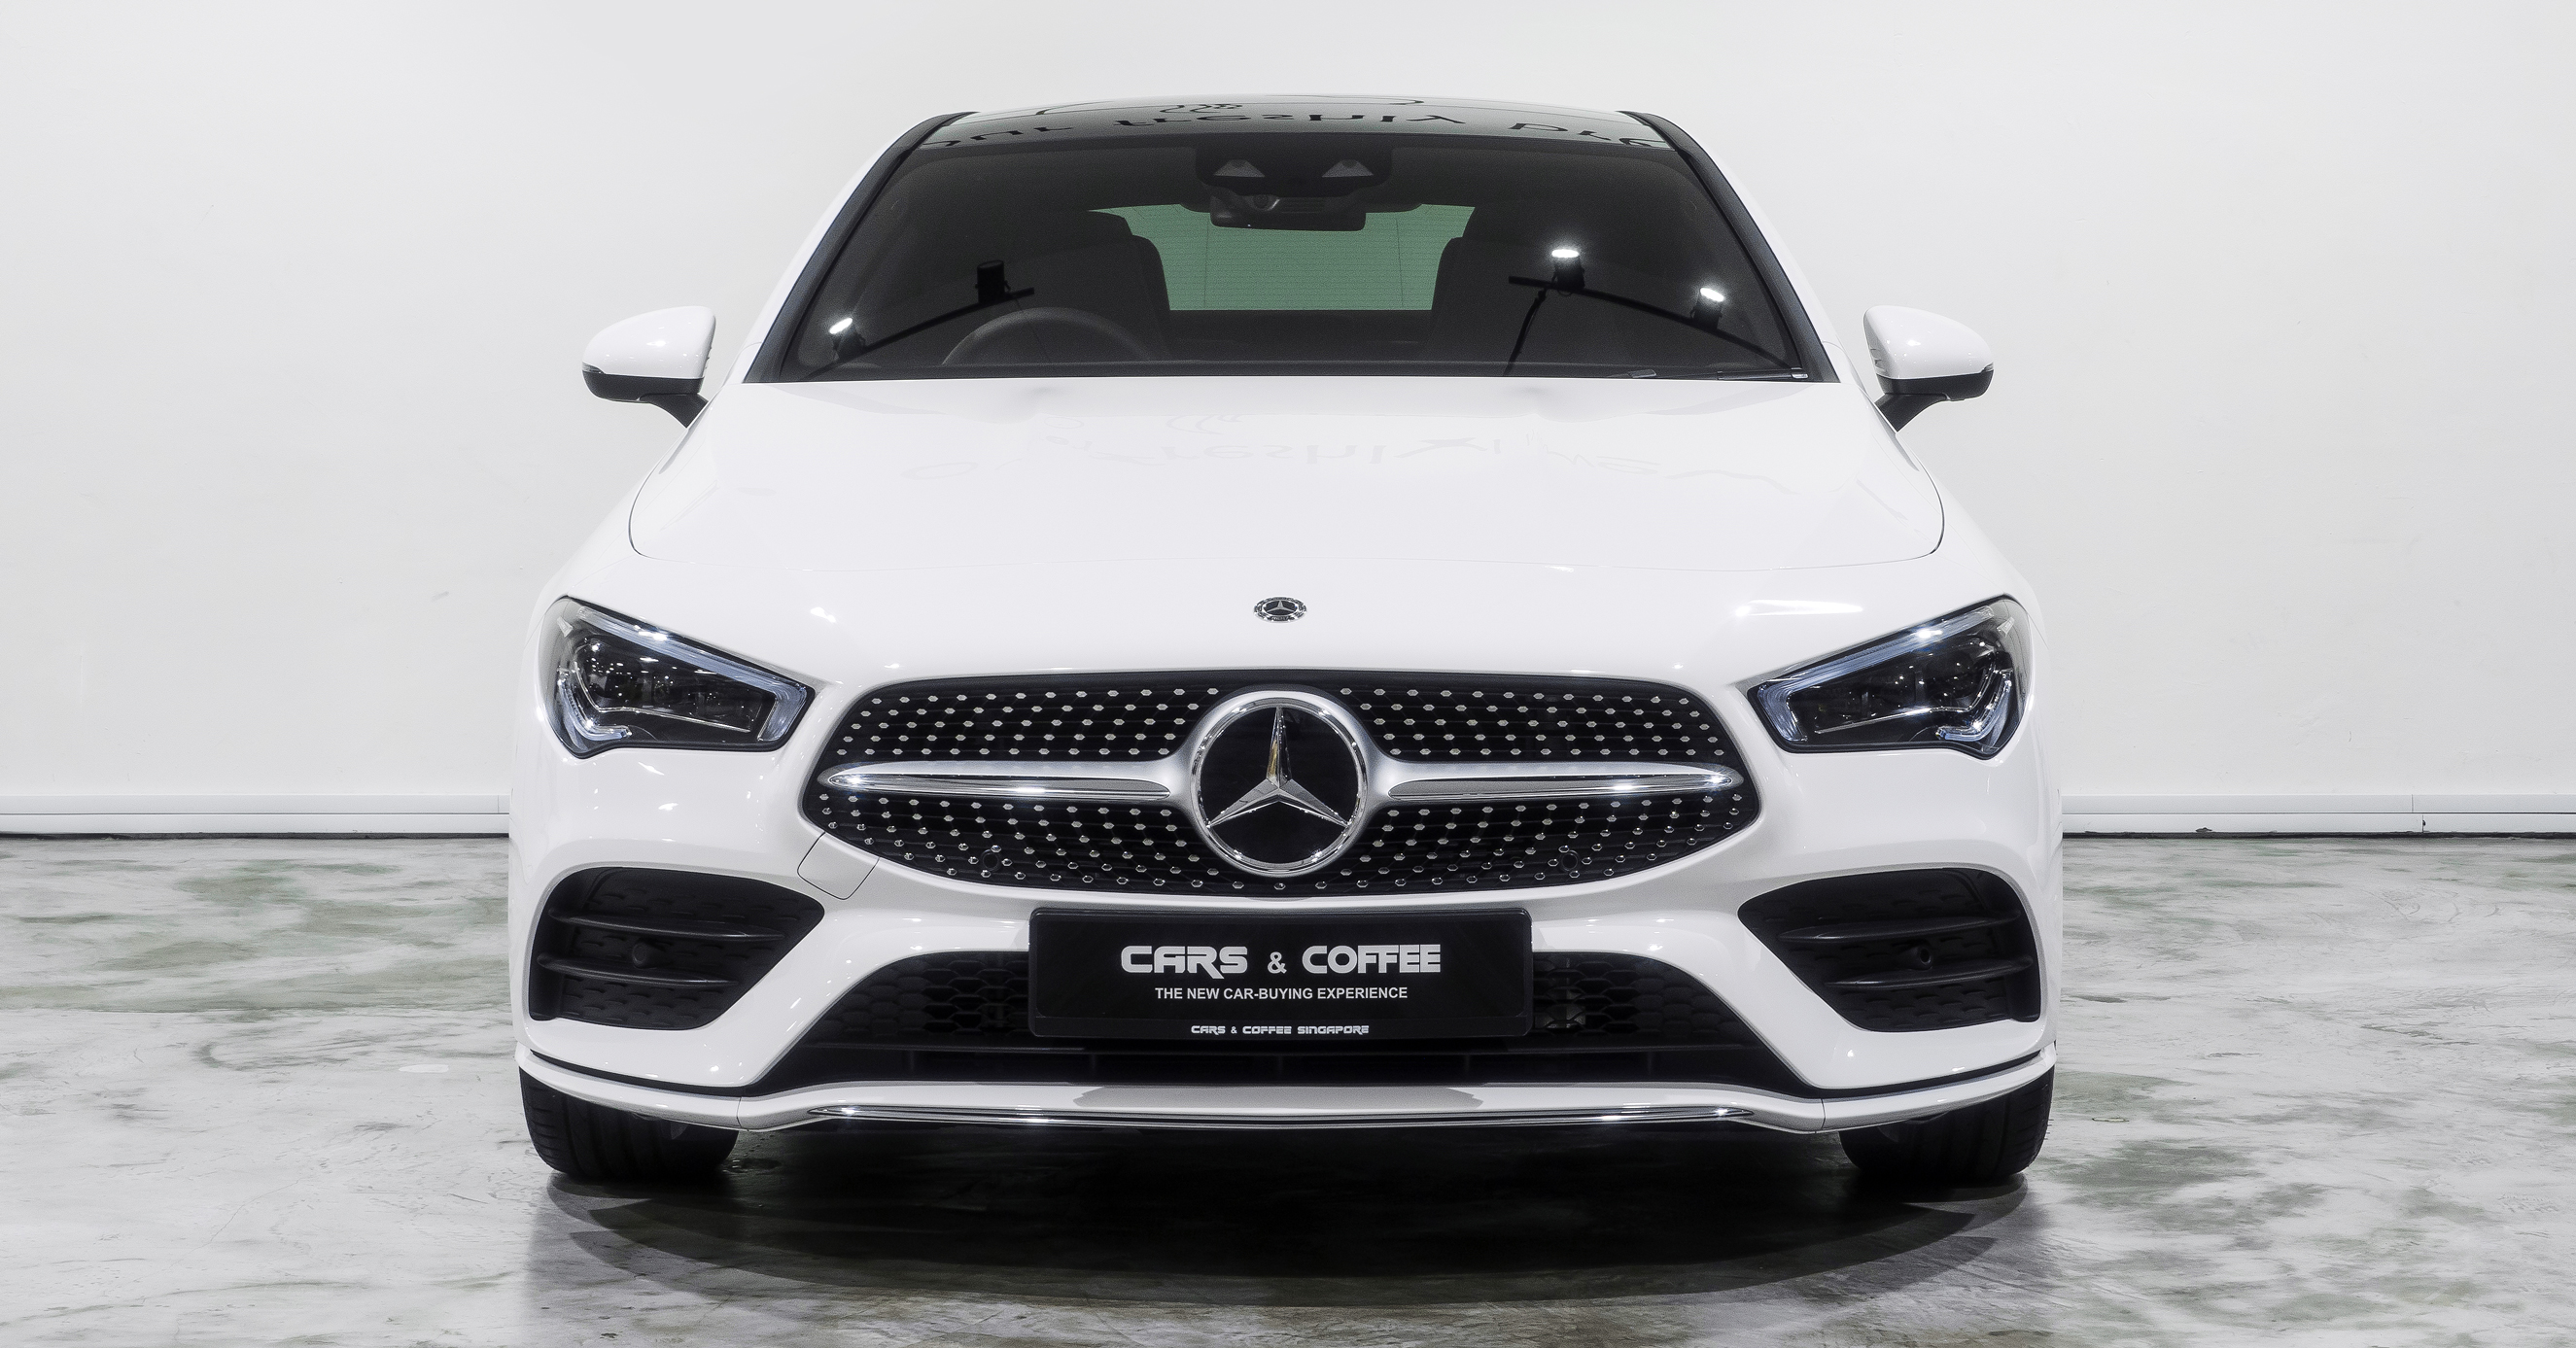 The new CLA has been designed with you in mind. With its eye-catching diamond radiator grille, frameless doors and swooping design, it's a car that stands out on the road.